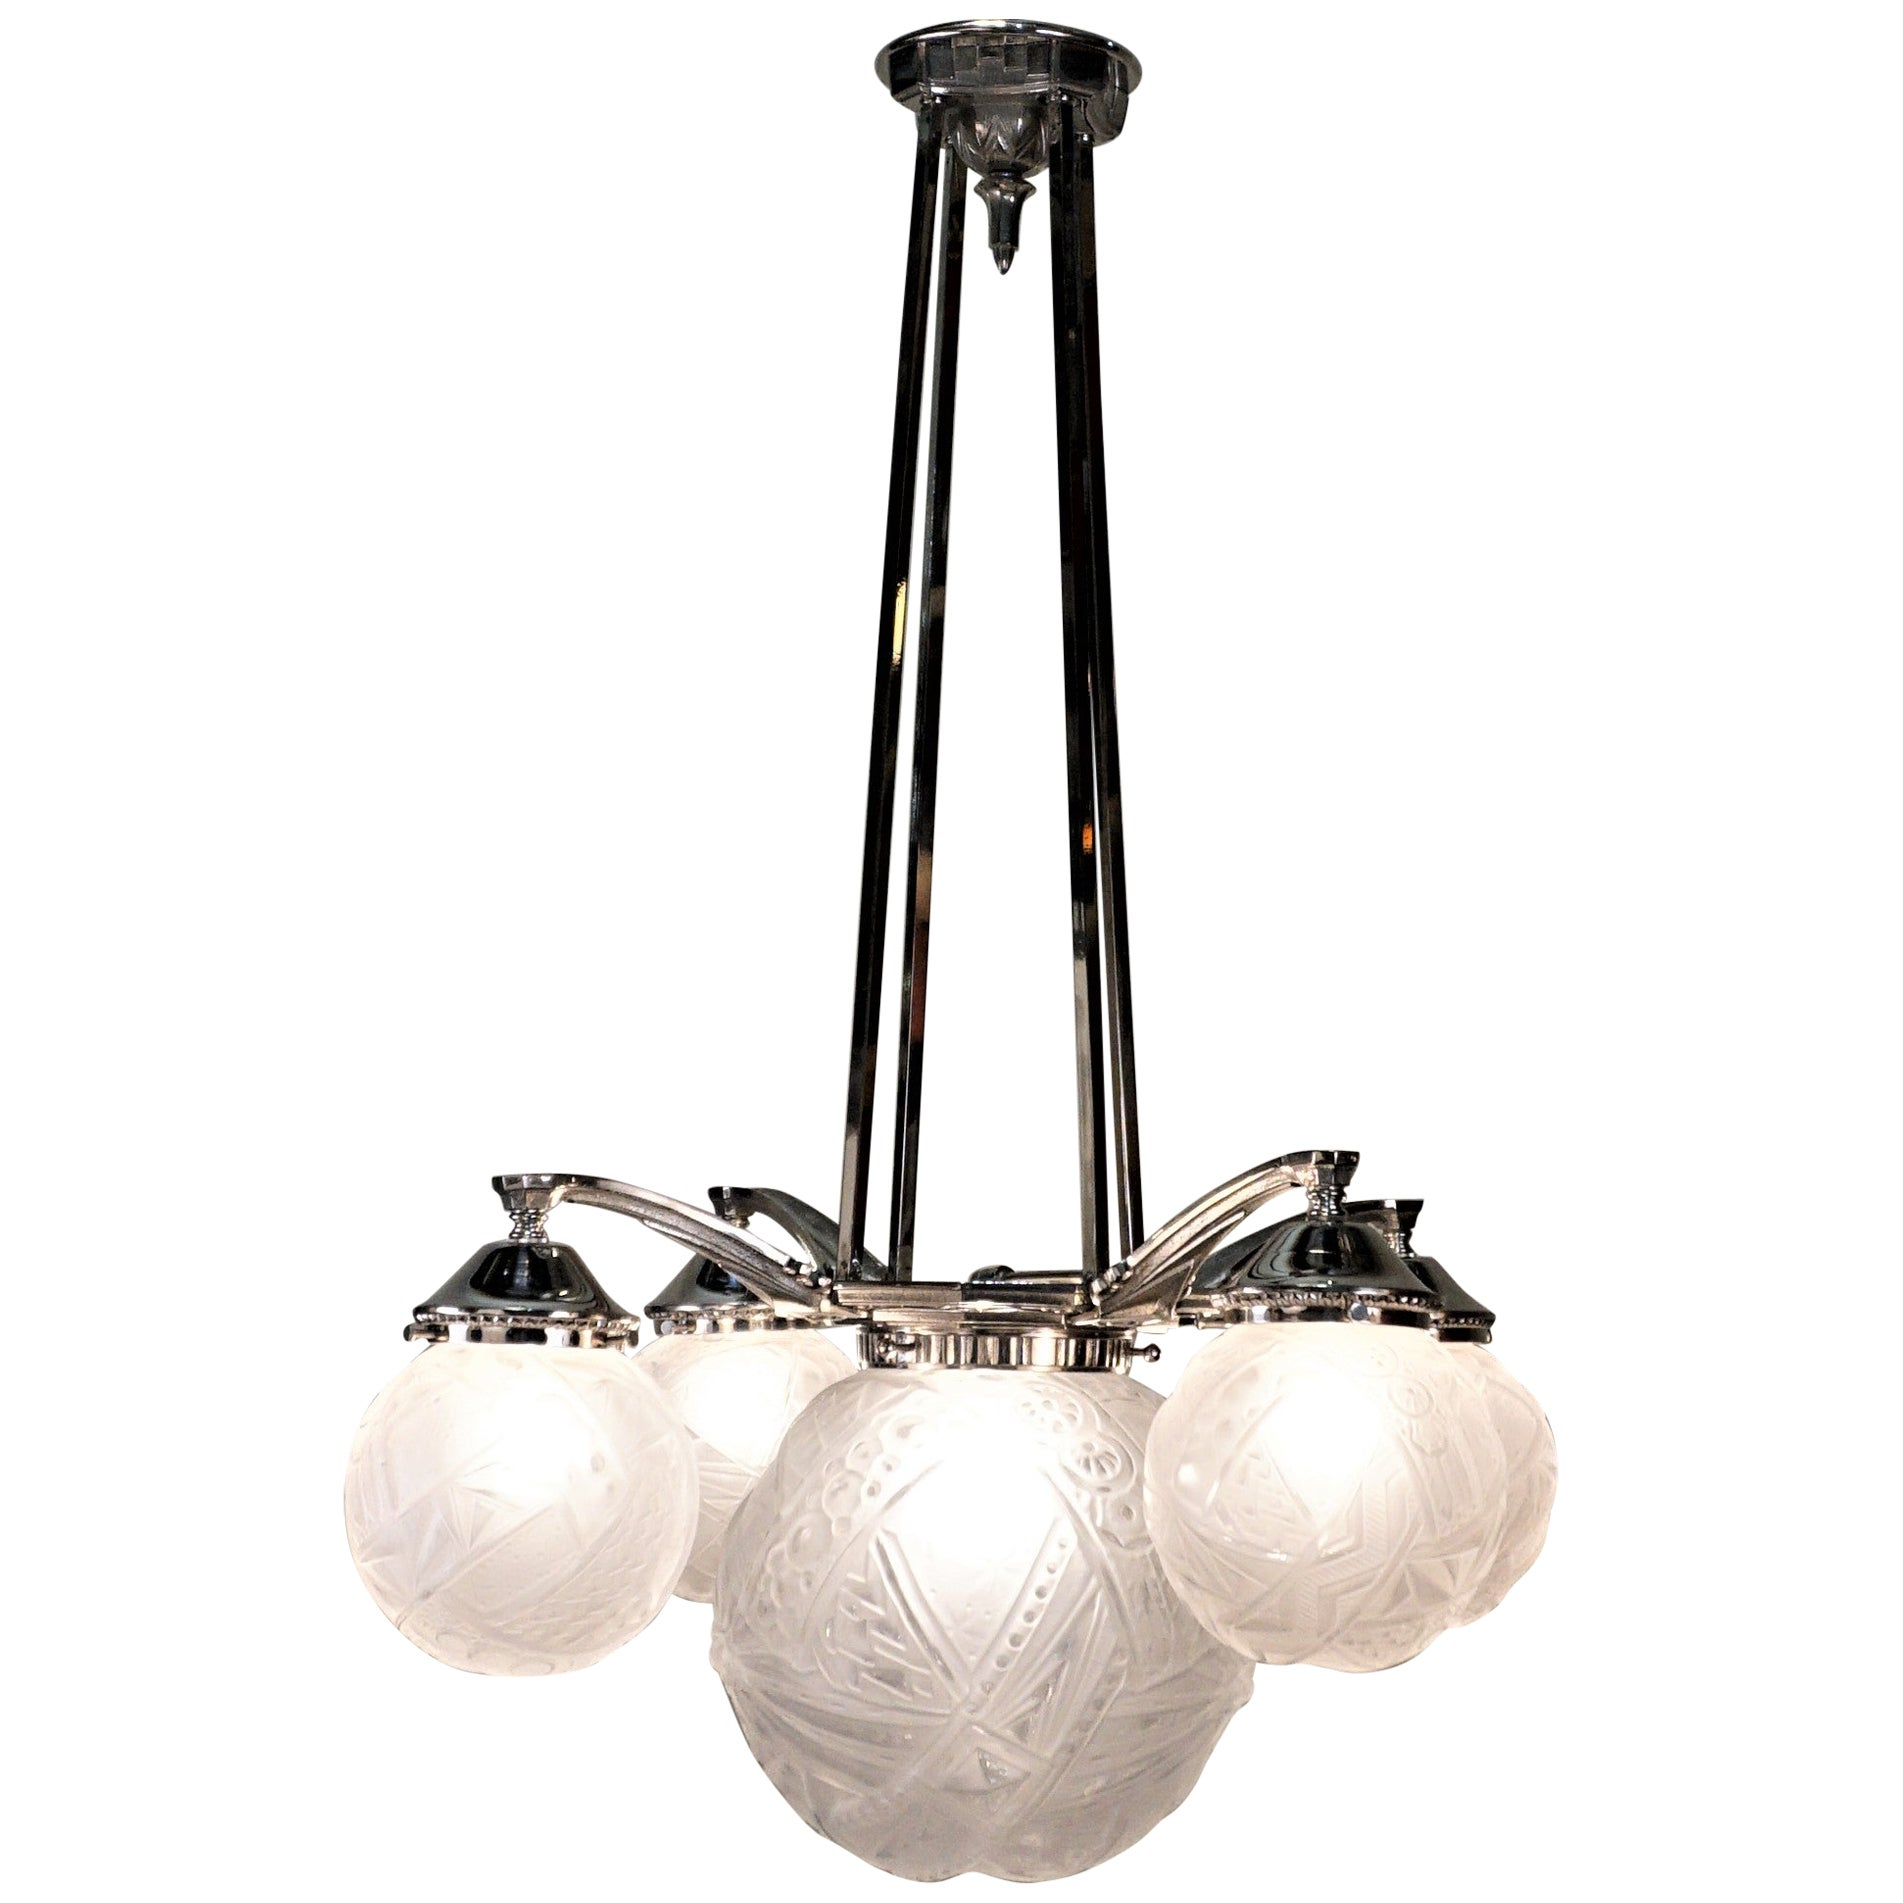 French Art Deco Chandelier by Muller Freres